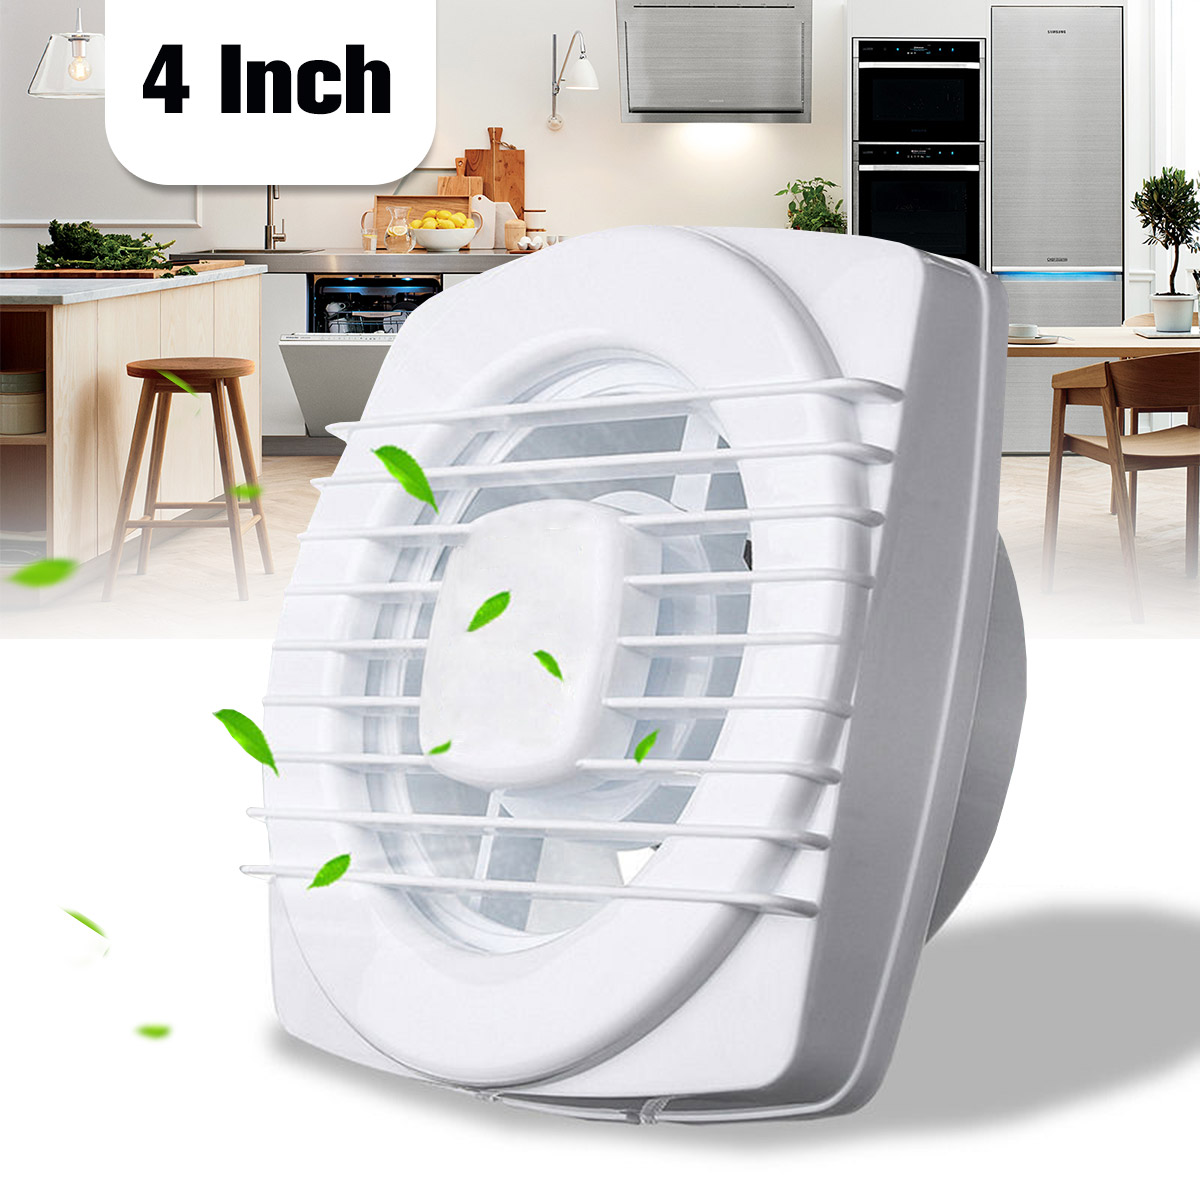 4 Inch 220V 12W Ventilating Exhaust Extractor Fans Plastic ...